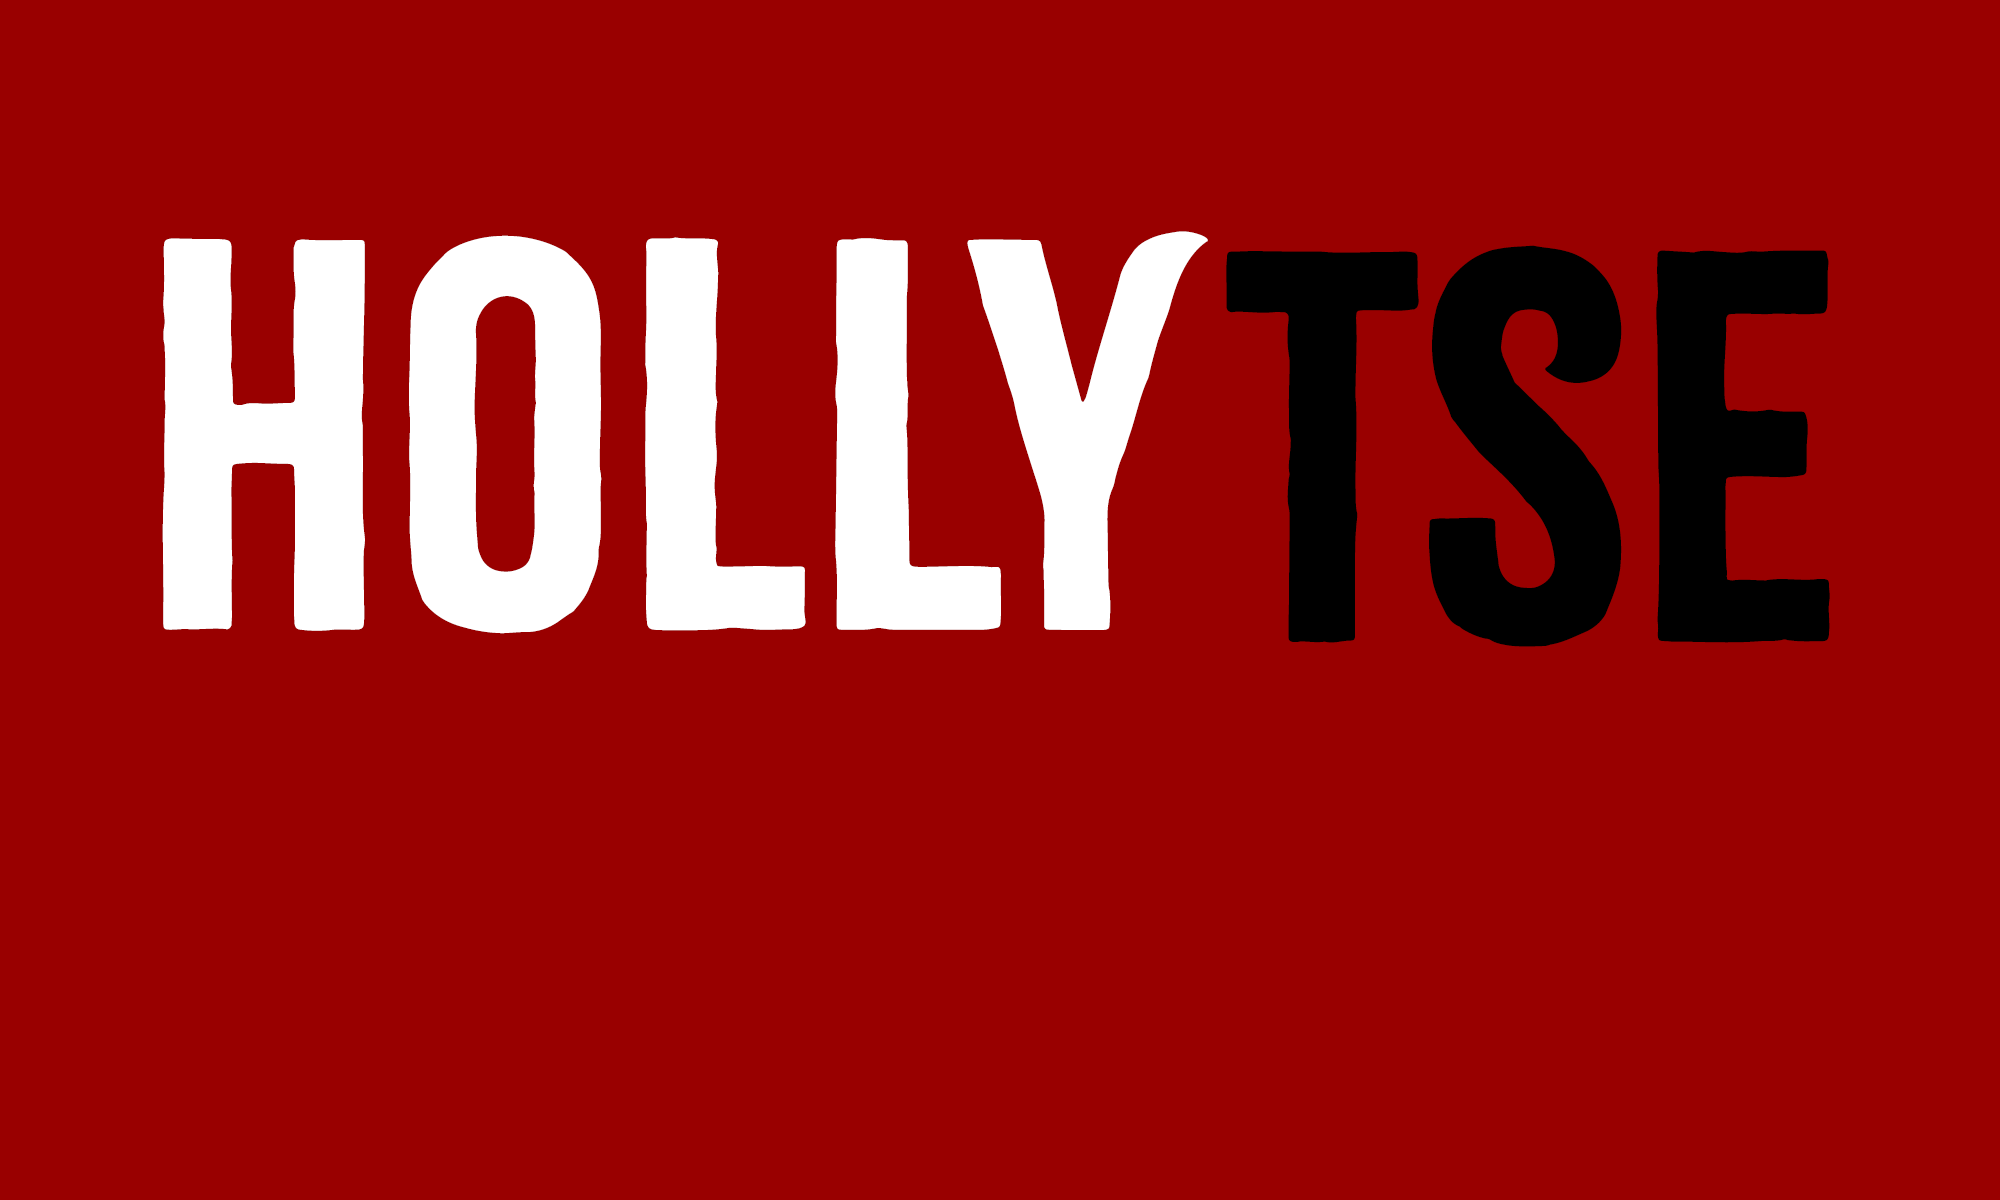 The Holly Tse Show